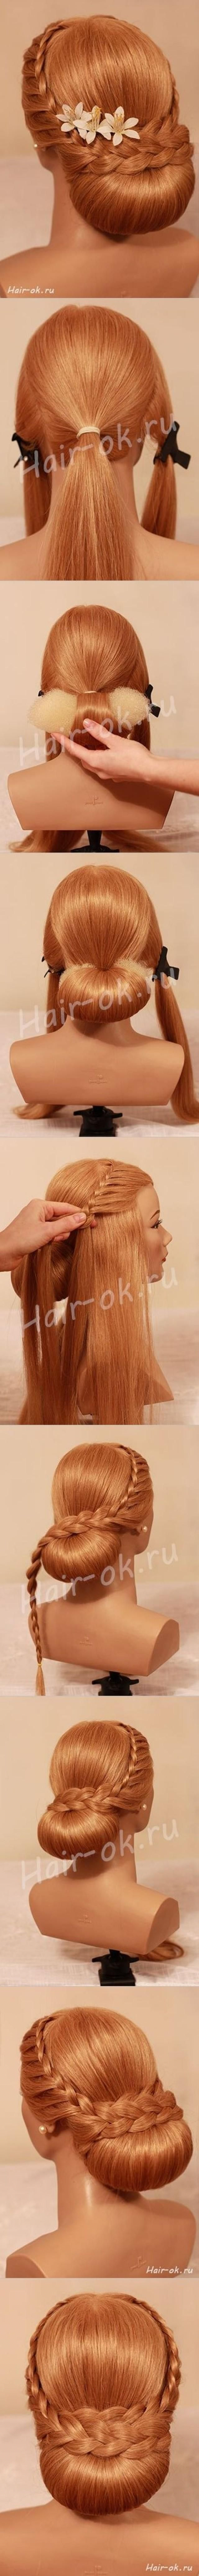 Weddbook is a content discovery engine mostly specialized on wedding concept. You can collect images, videos or articles you discovered  organize them, add your own ideas to your collections and share with other people - White and Gold Wedding. Bridesmaid Hair. Natural Hair. braided hair tutorial